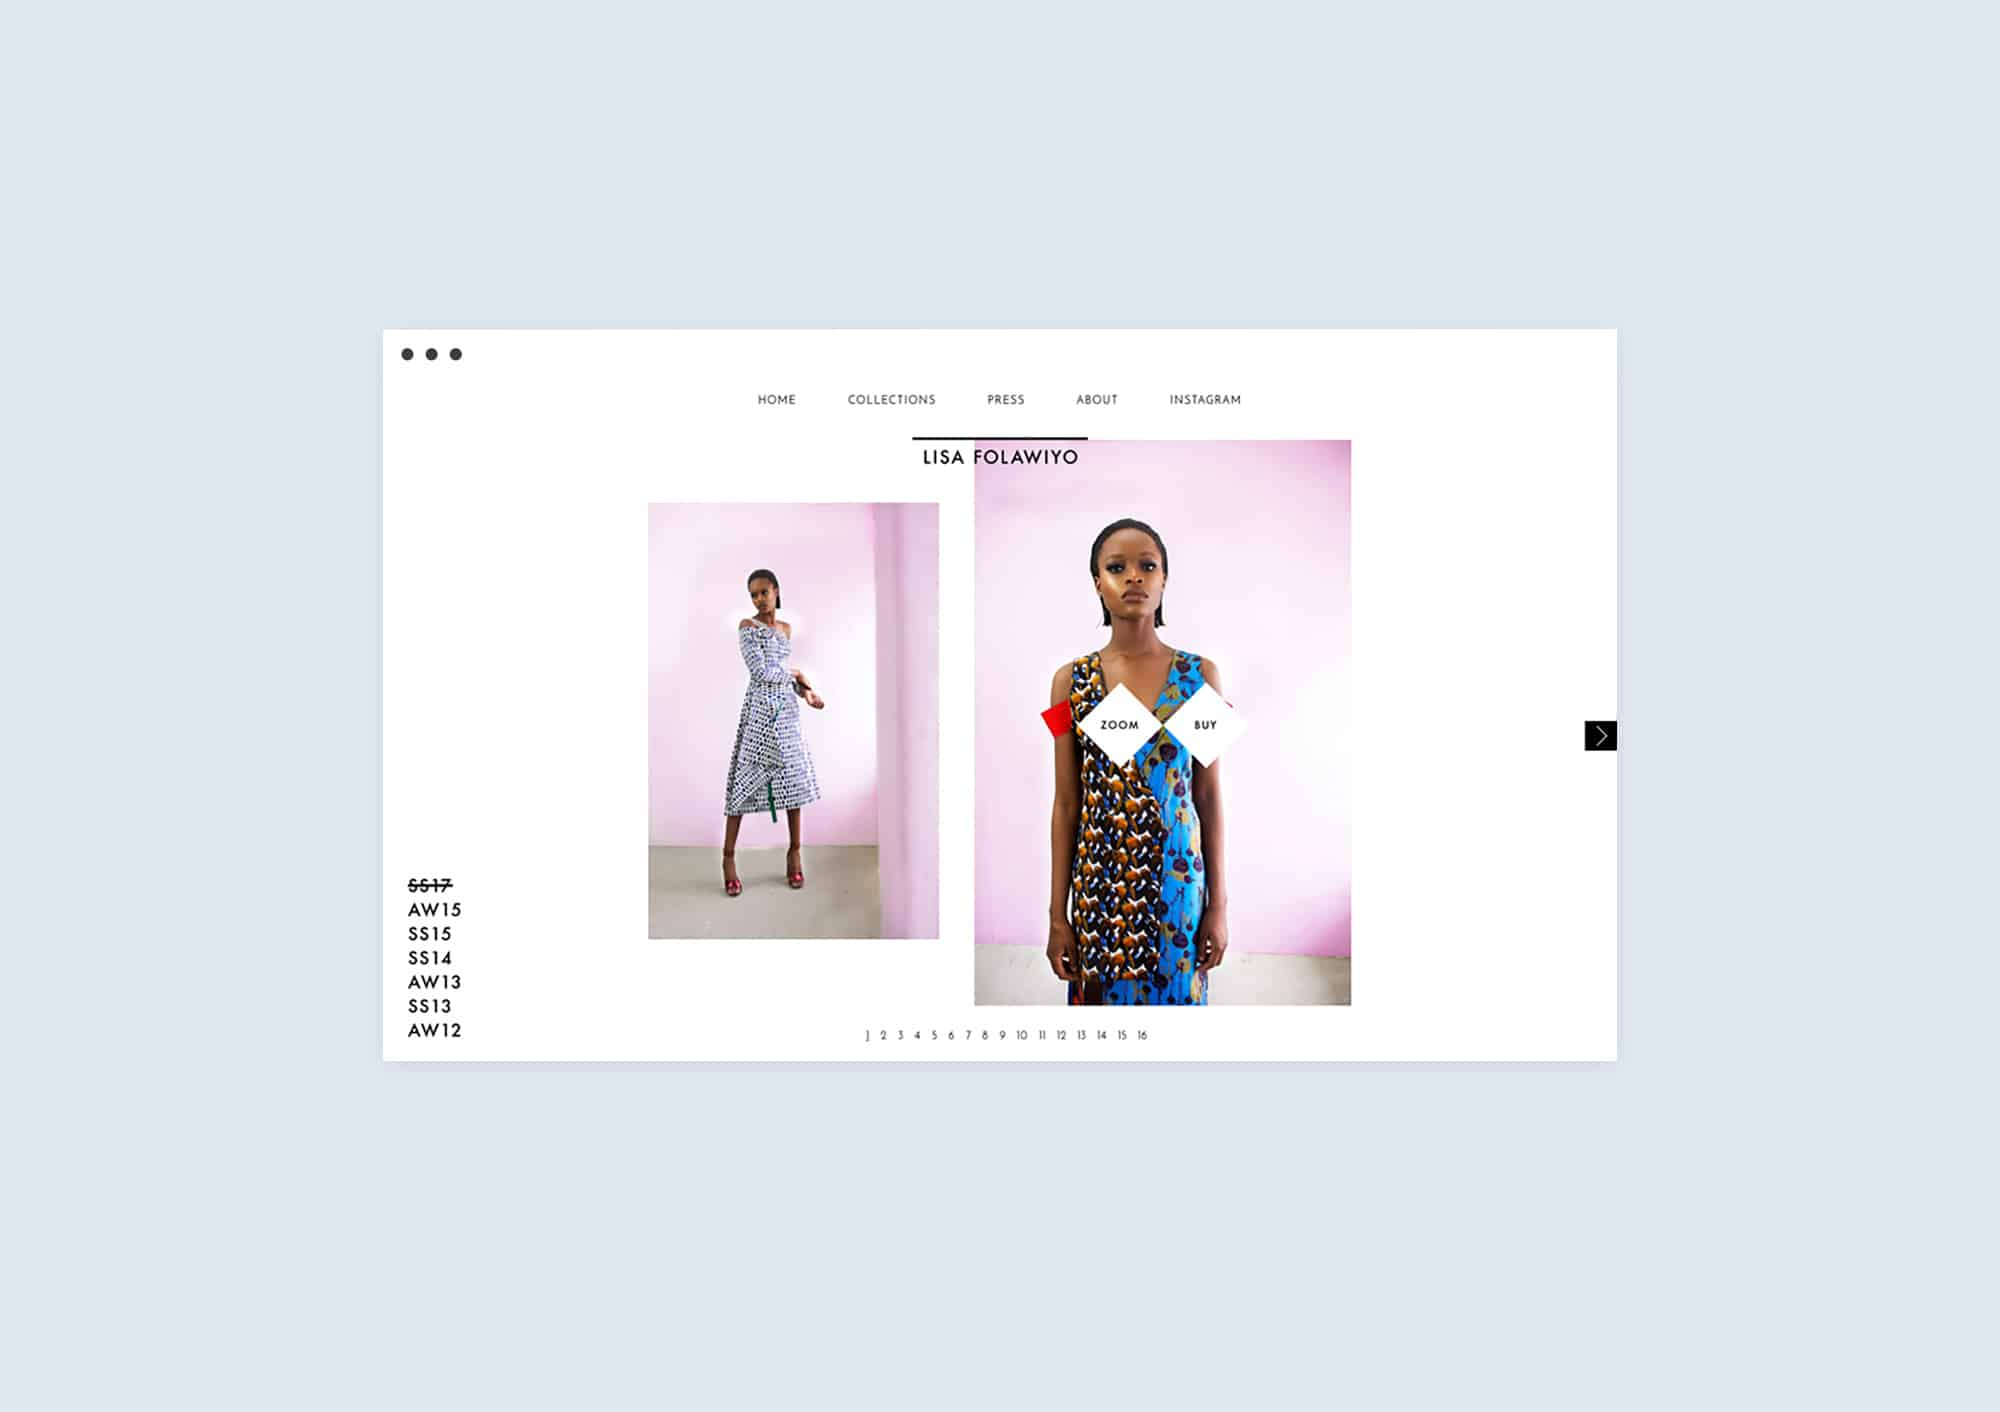 Product page design website for Lisa Folawiyo